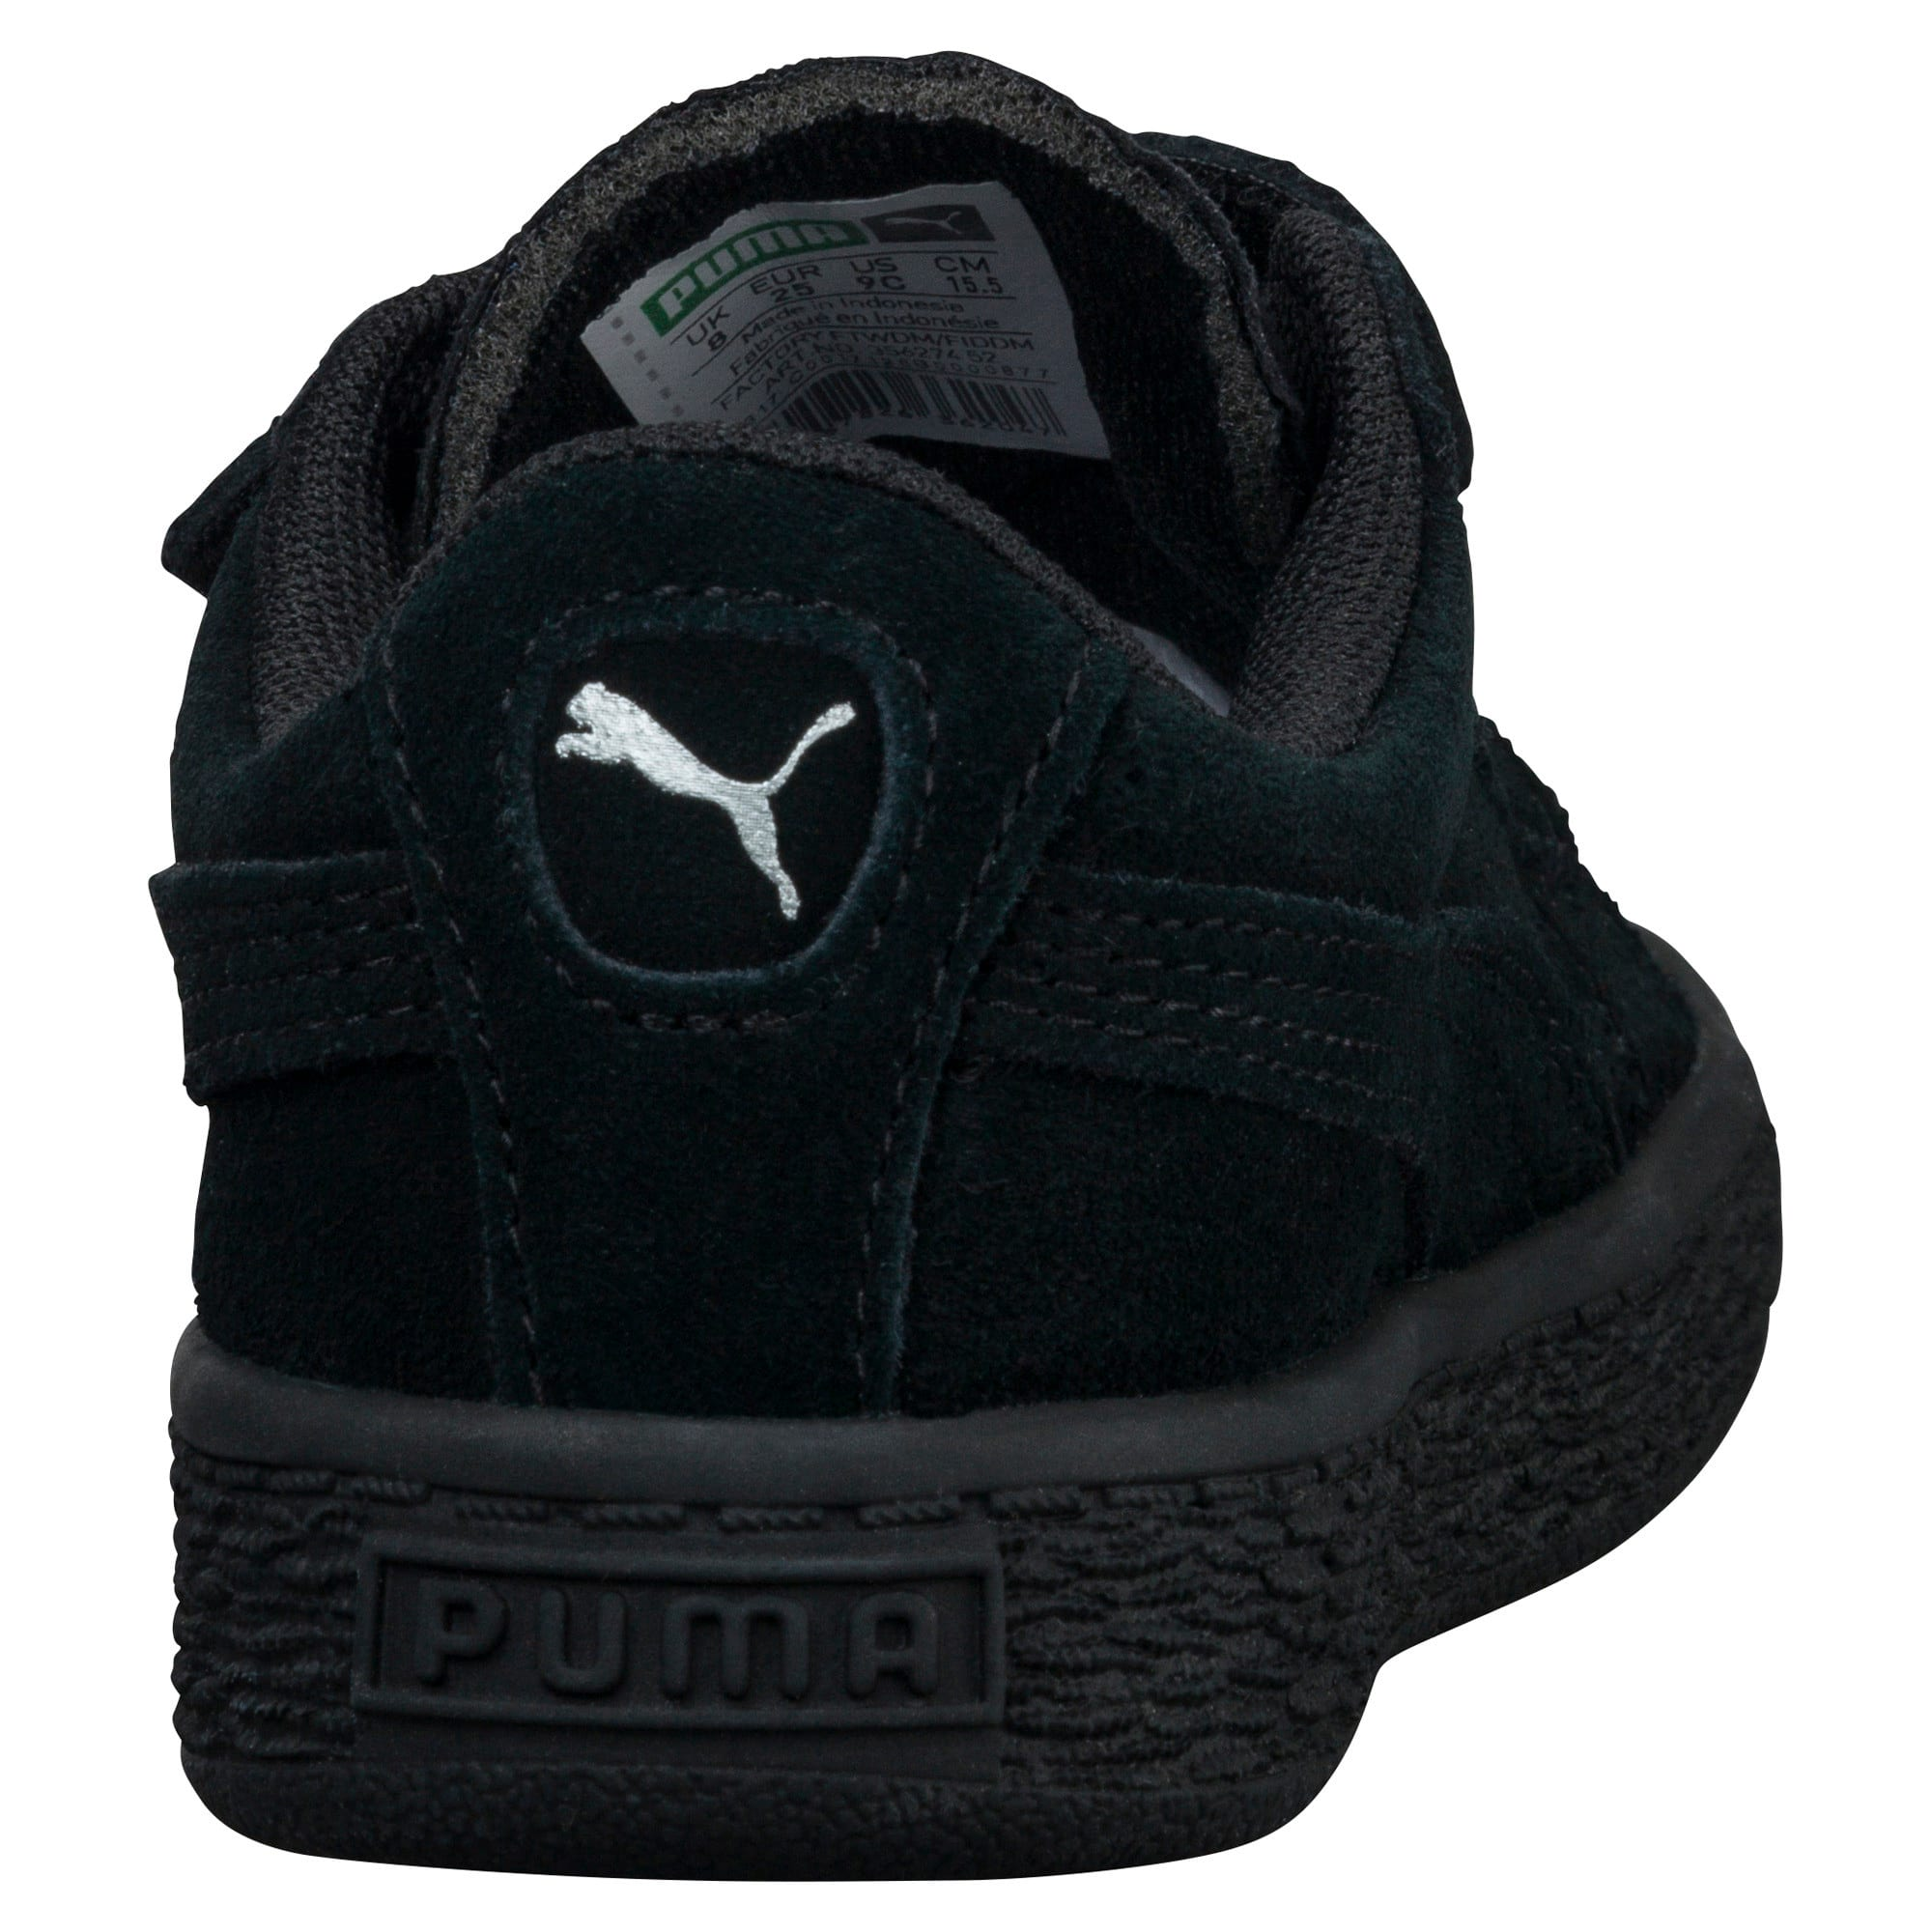 Thumbnail 4 of Suede Two-strap Babies' Trainers, Puma Black-Puma Silver, medium